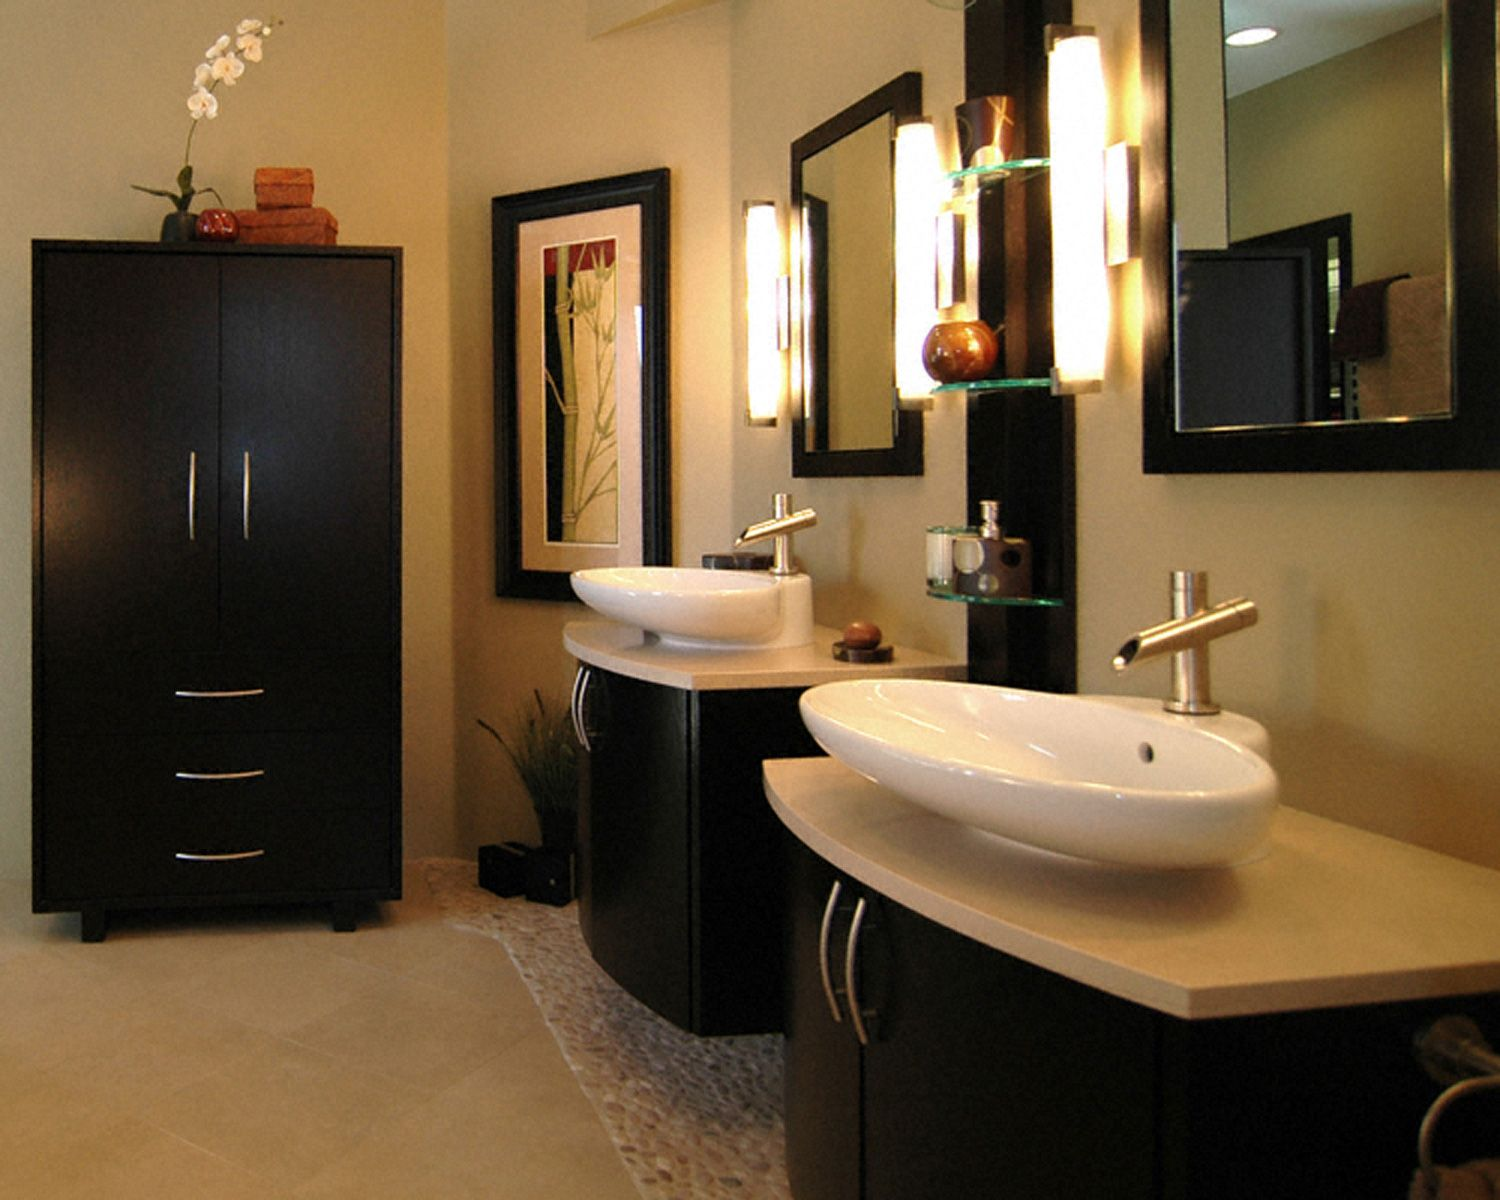 Asian style bathrooms - 25 Best Asian Bathroom Design Ideas